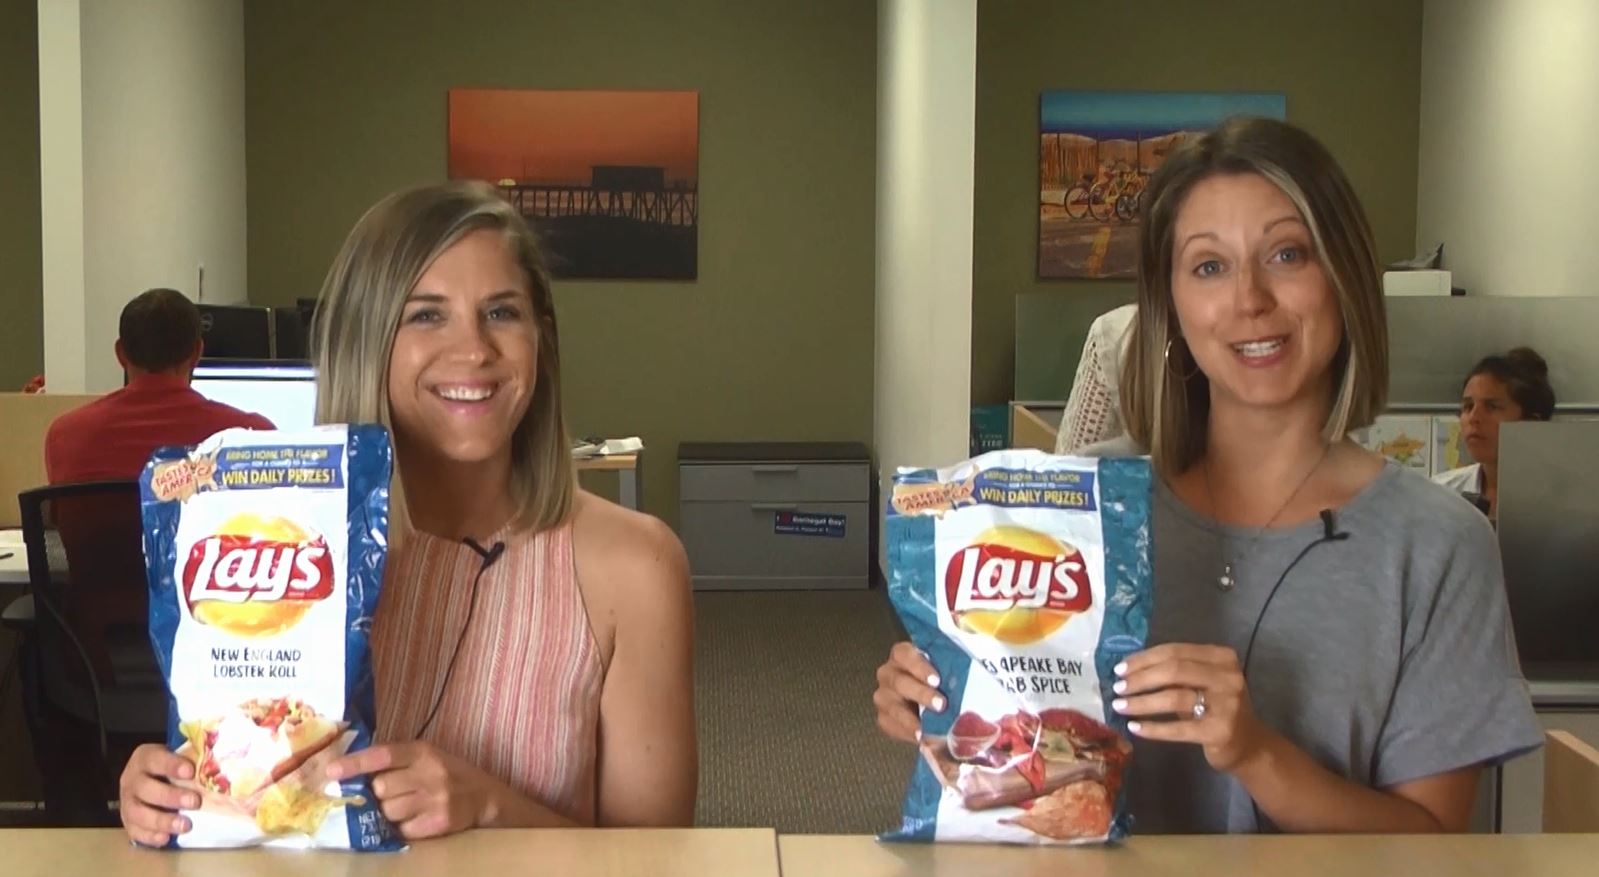 Taste Test: What Do The New Lay's Lobster Roll and Chesapeake Bay Crab Spice Chips Taste Like?